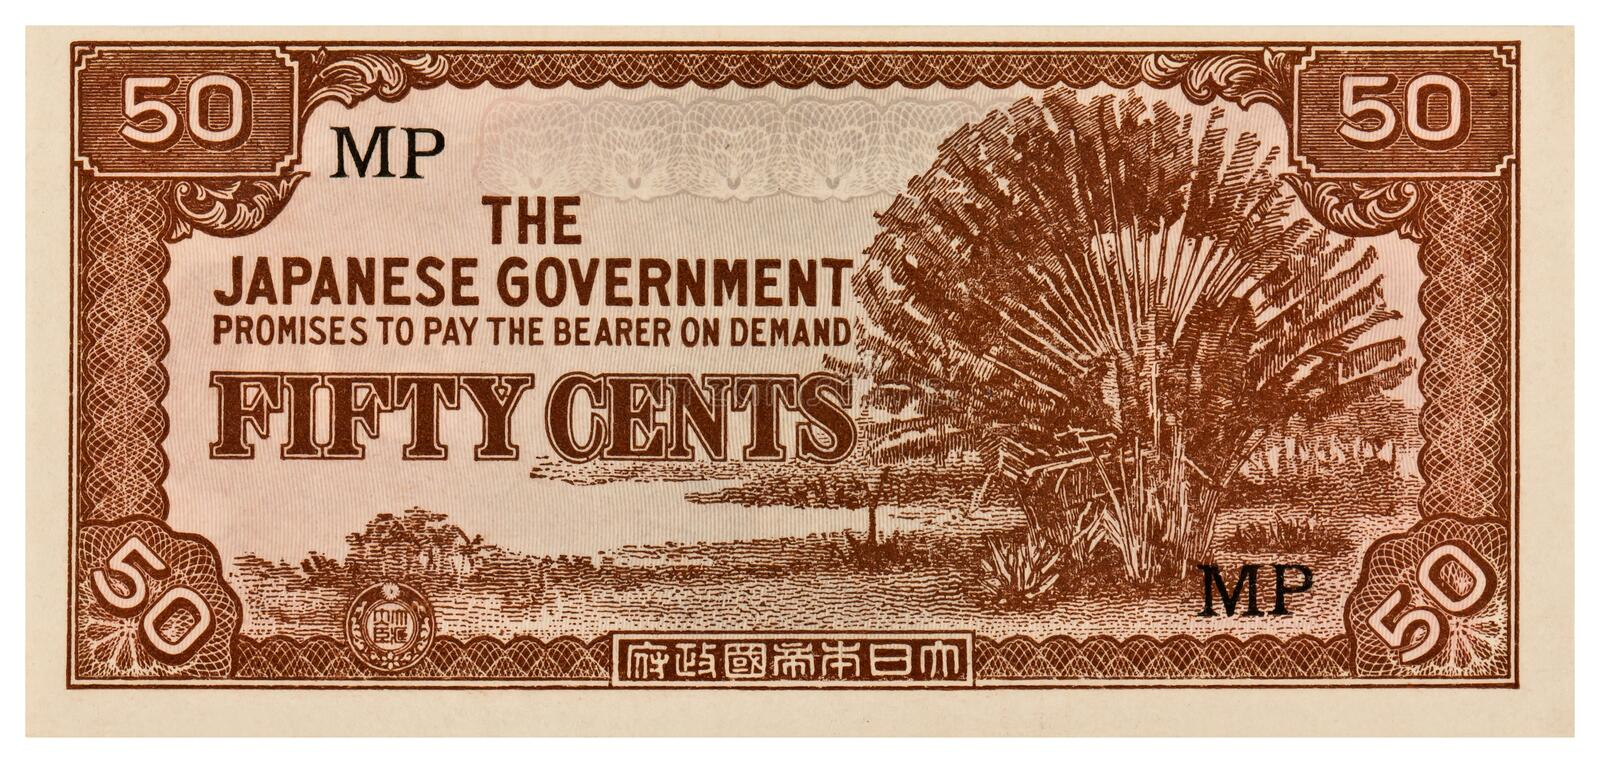 Download Vintage Japanese Currency - 50 Cents Stock Image - Image: 20126181